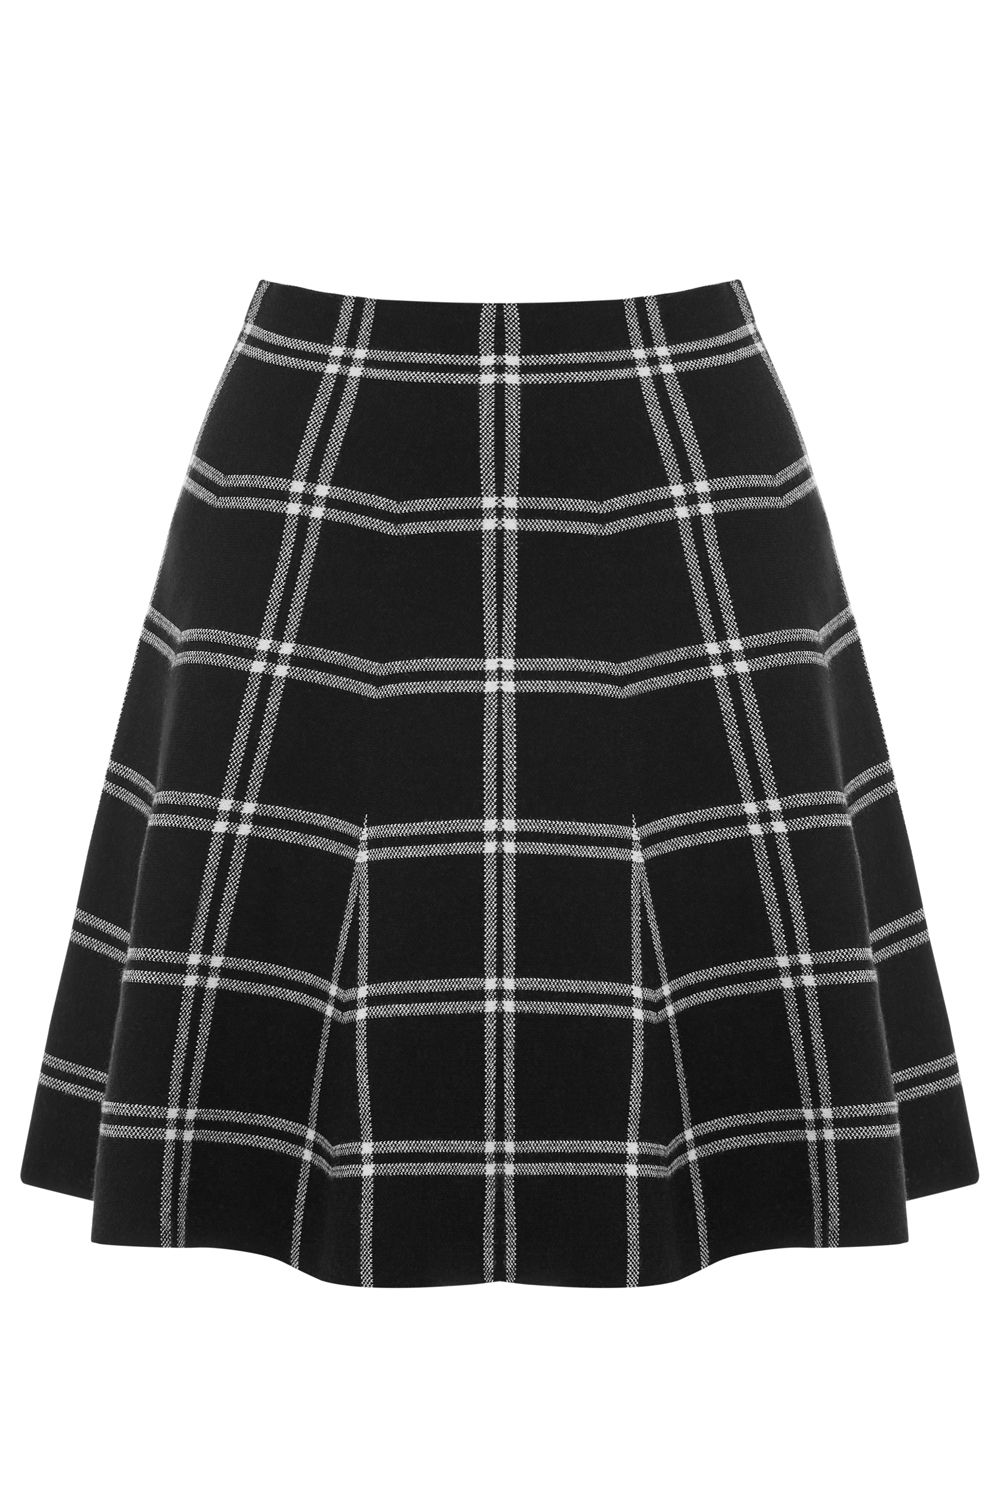 Oasis Checked Skirt, Multi-Coloured